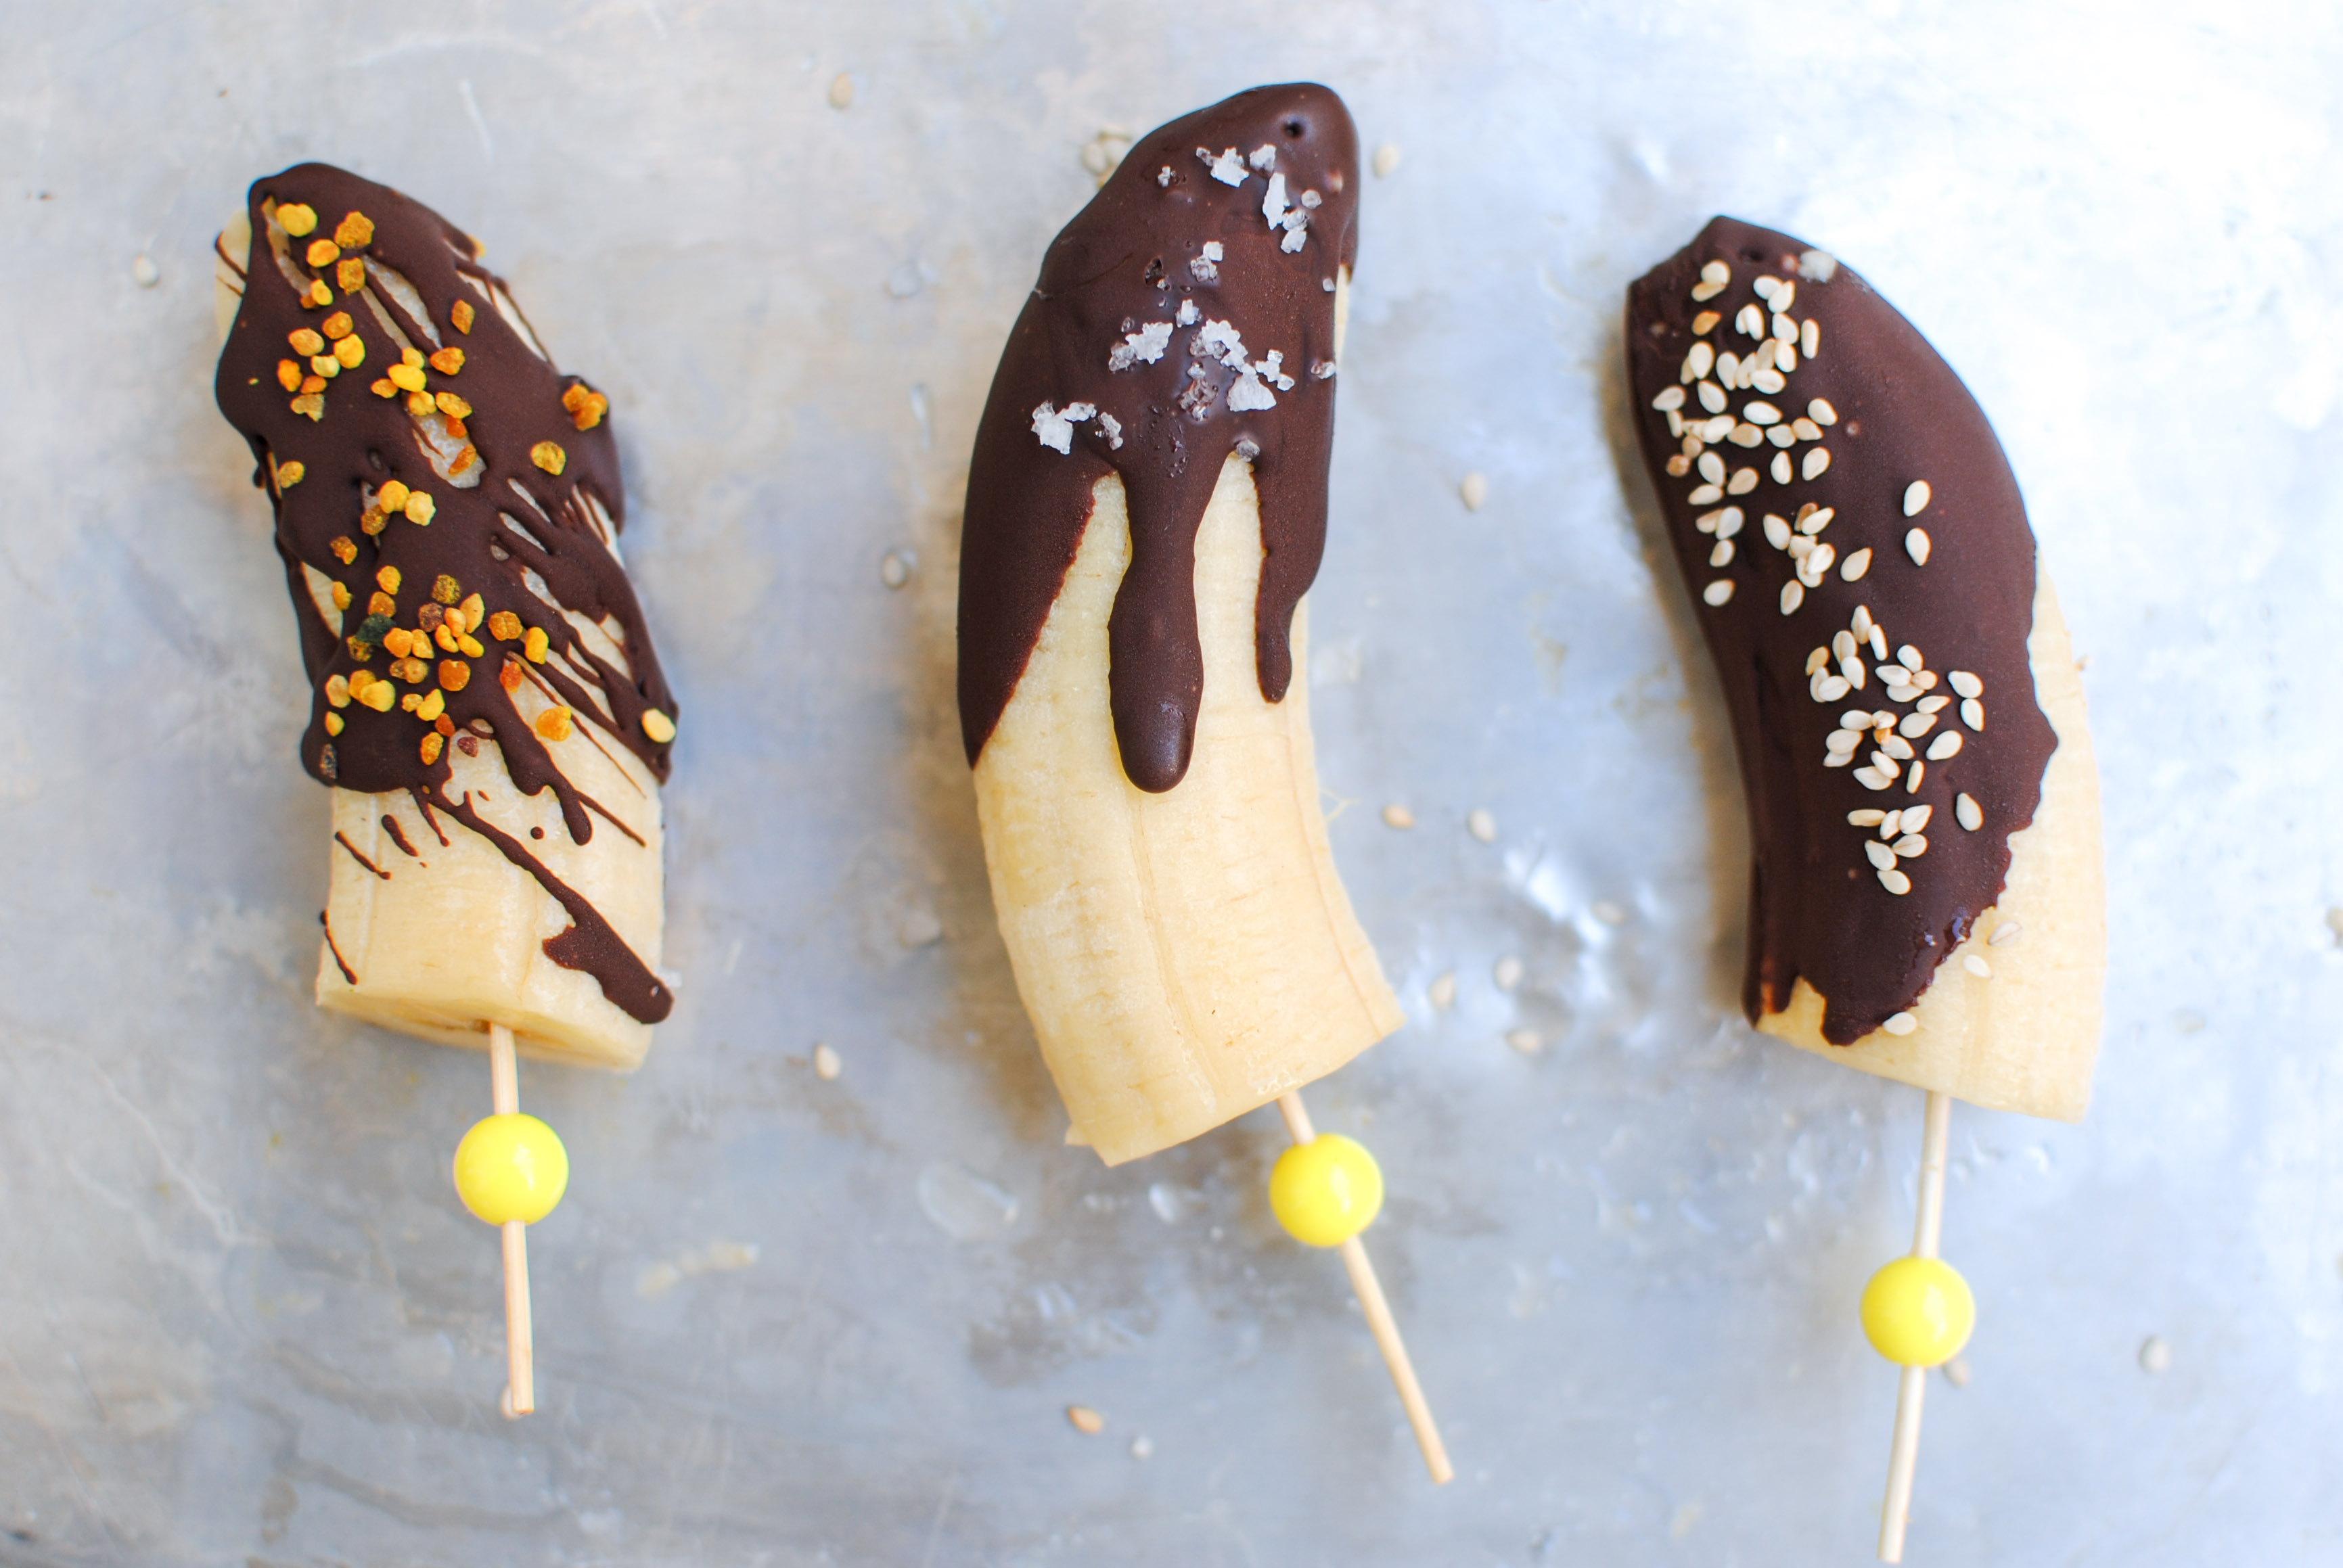 Pops de banana e chocolate